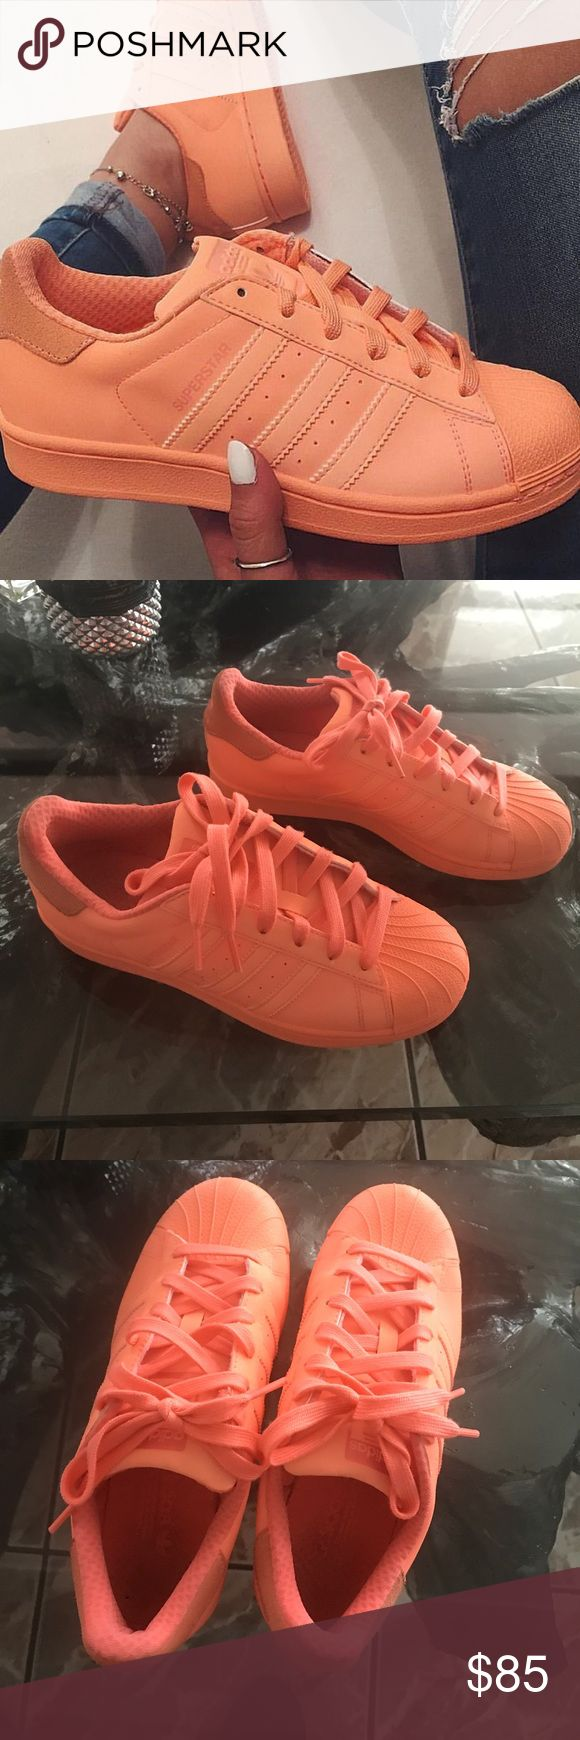 Adidas SUPERSTAR REFLECTIVE Peach Shoes Adidas superstar adicolor sunglow. Reflection orange super cute and comfy. Im size 8 and this Men size 5 fits perfect! Excellent condition. Im selling just because I don't wear them. Adidas Shoes Sneakers